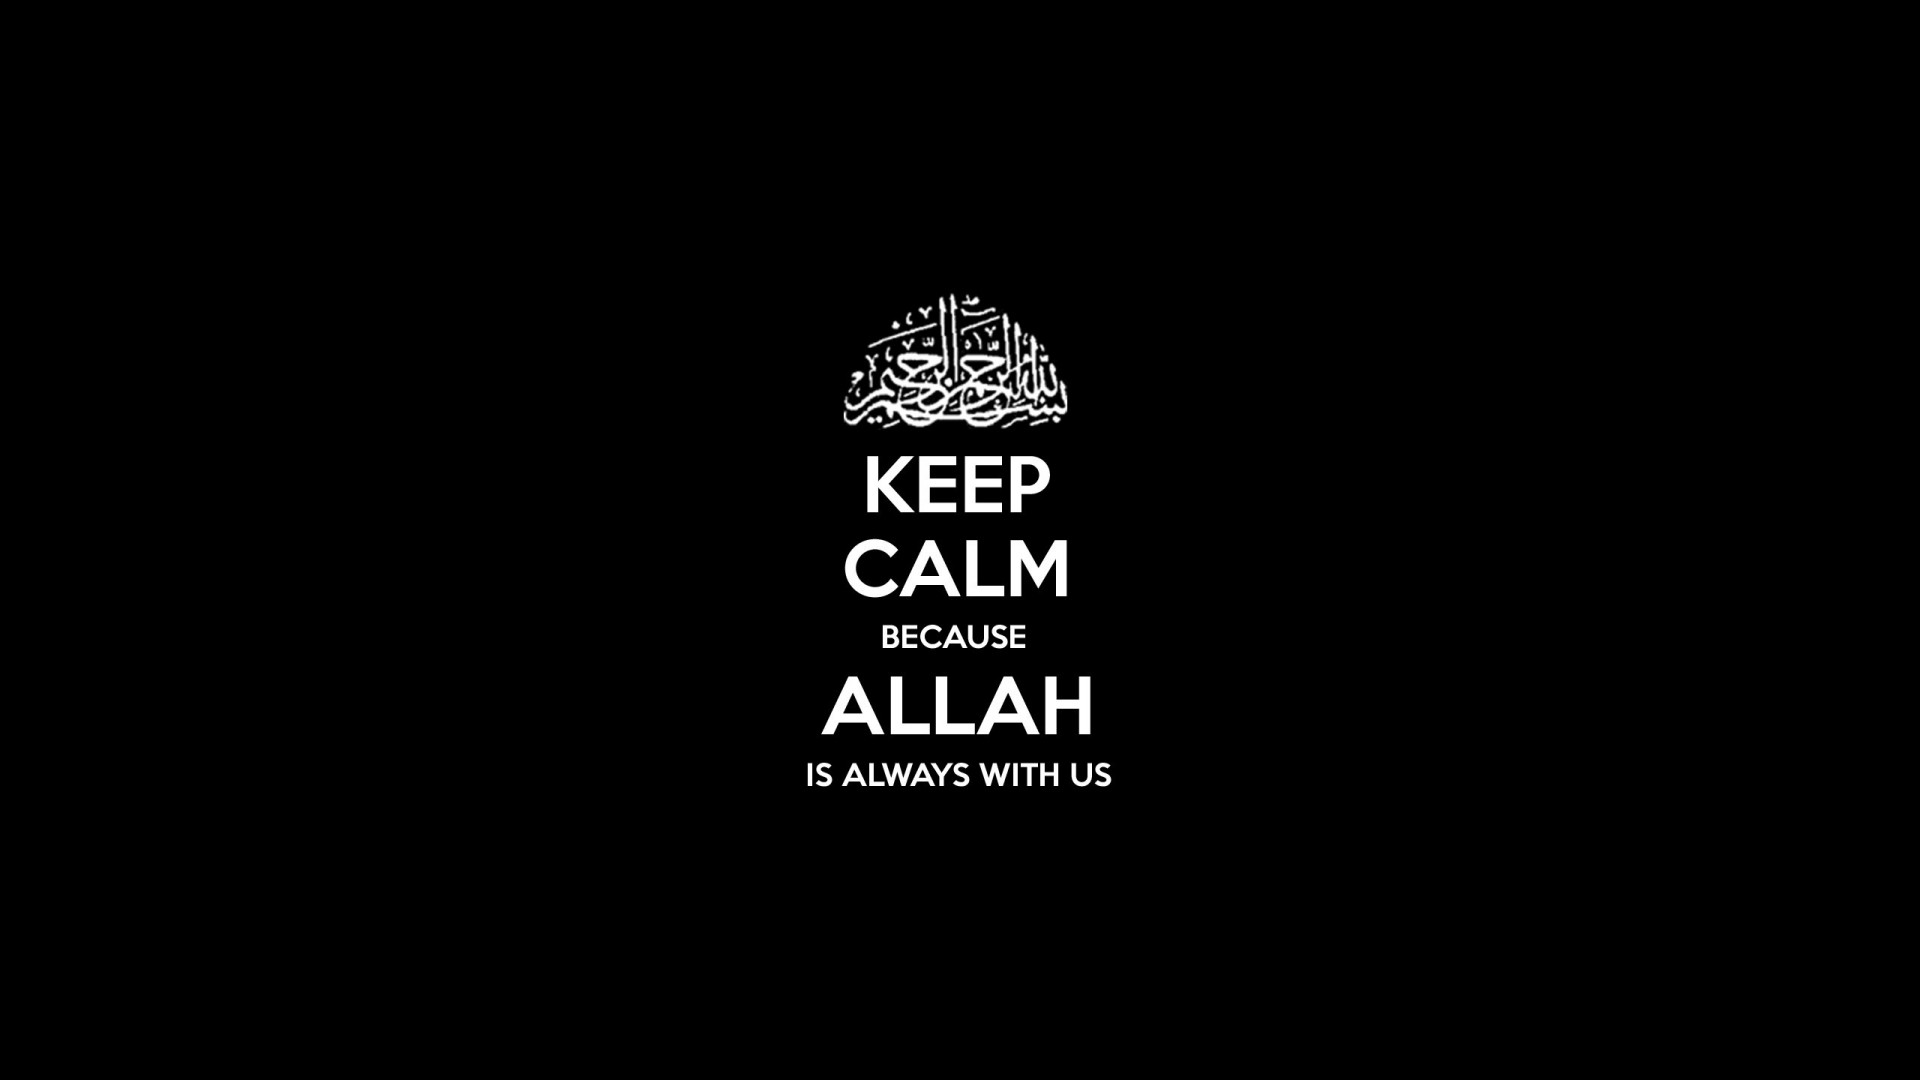 Calm And Allah Quotes Background HD Wallpaper Keep 1920x1080